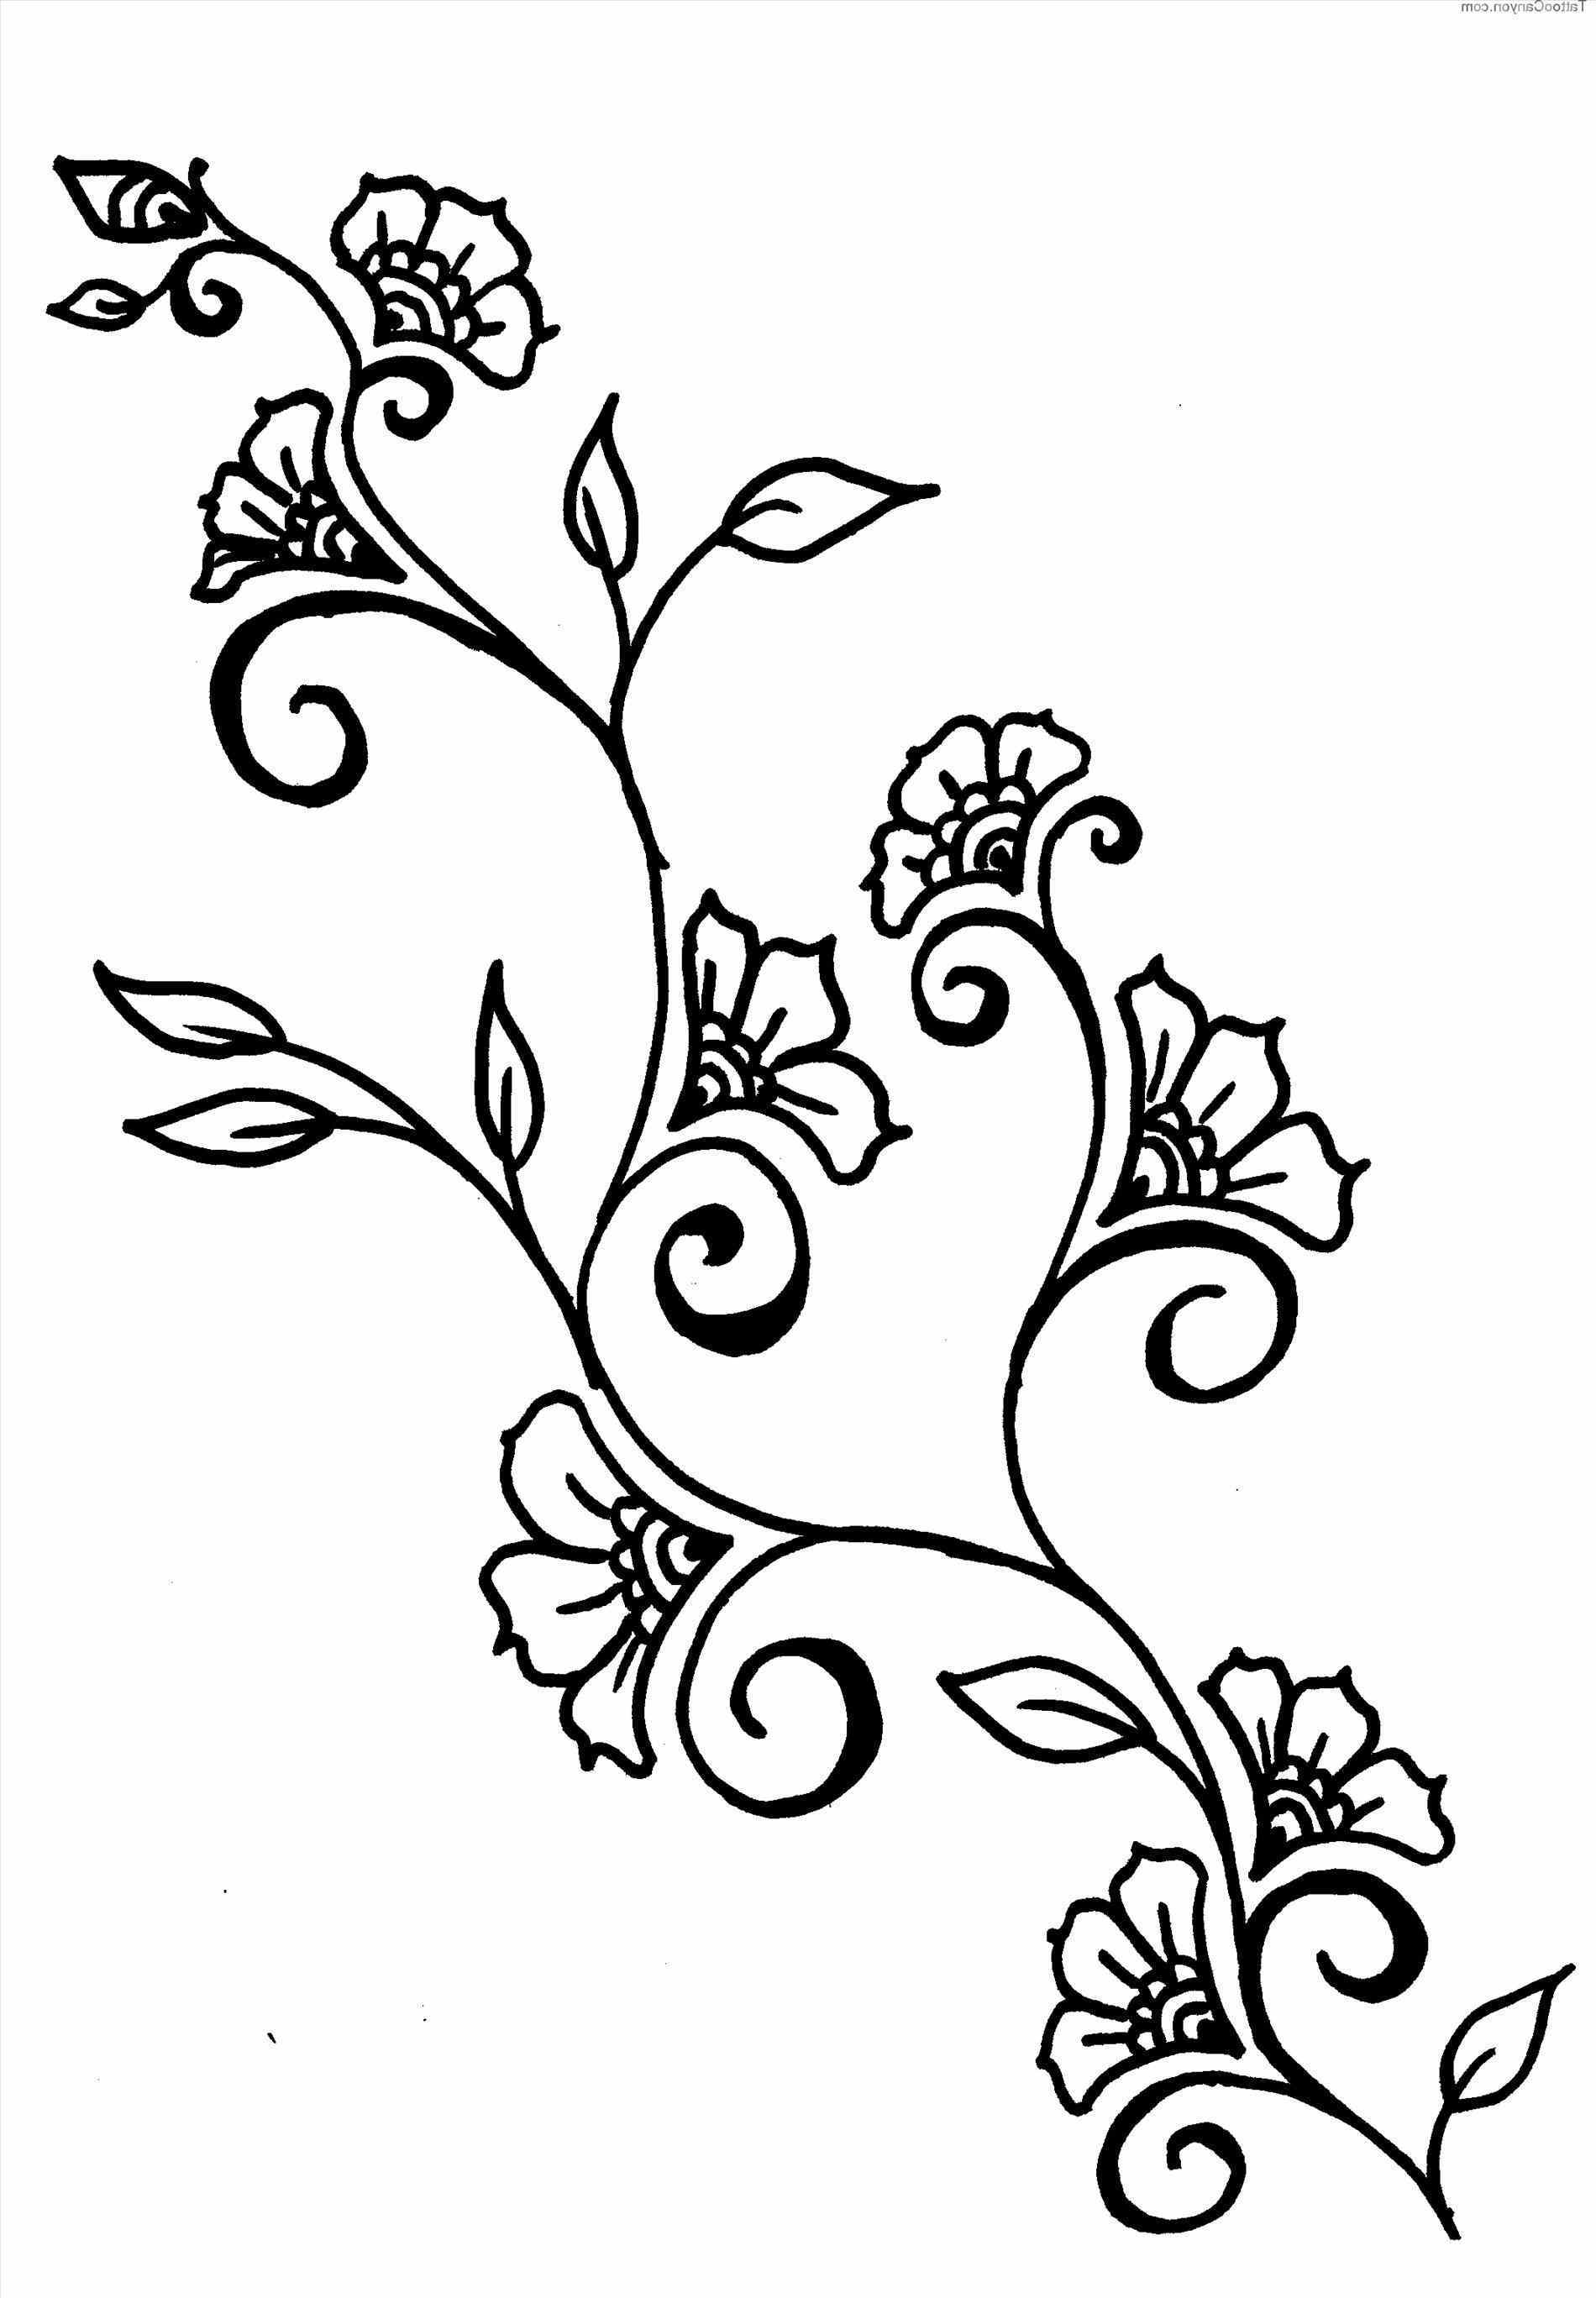 Flower vines drawings